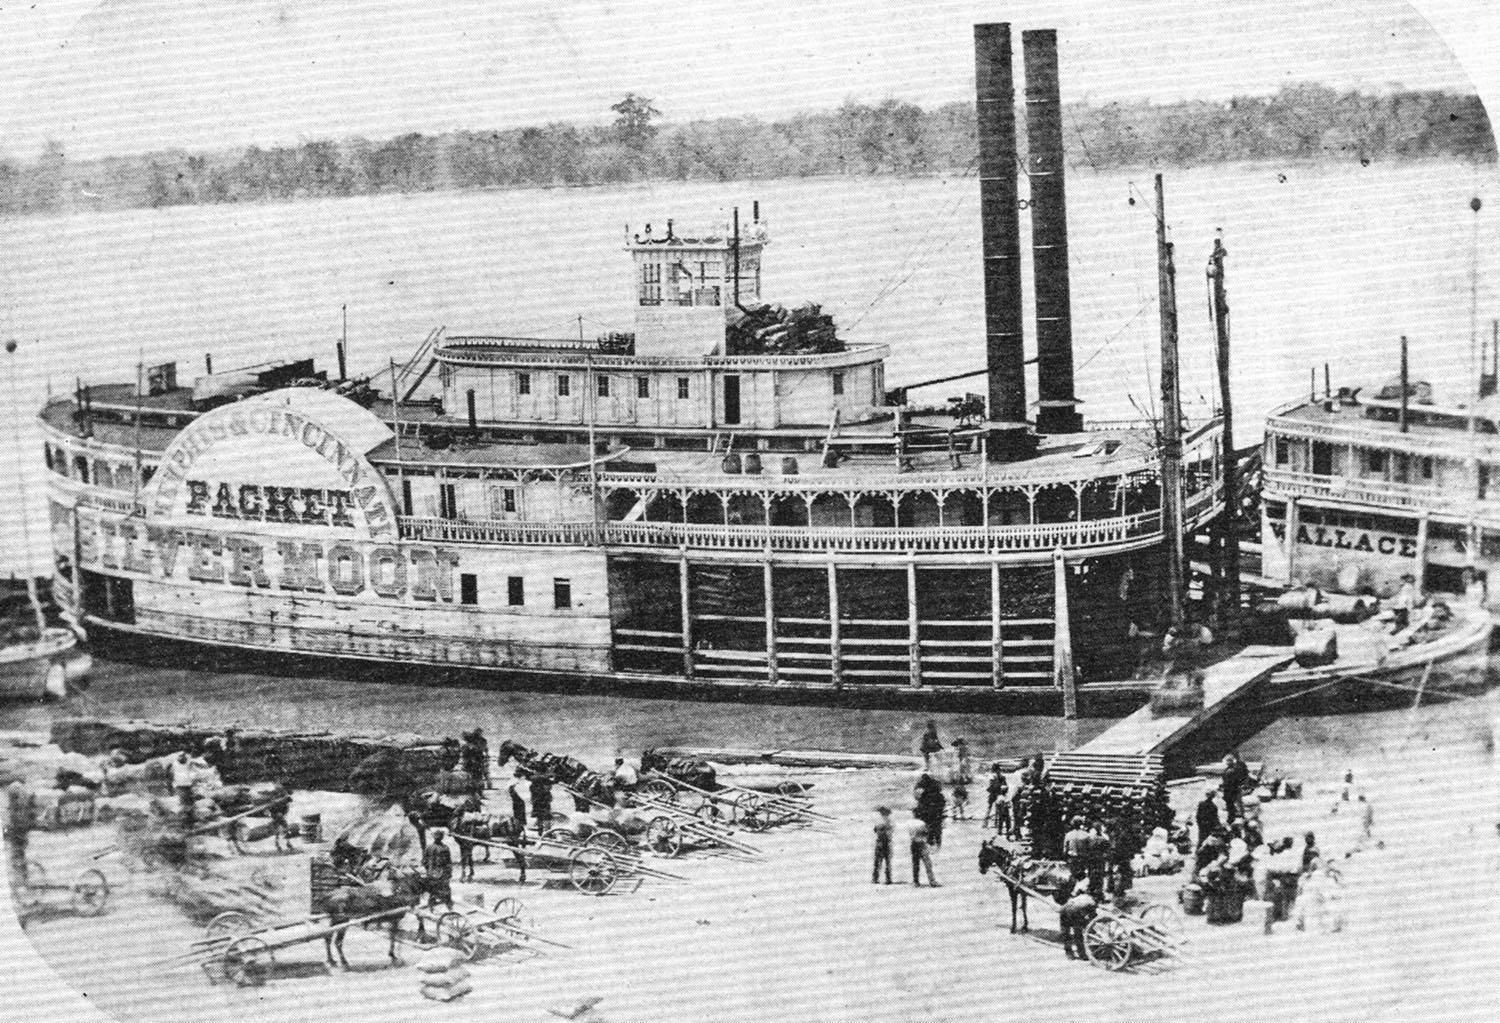 The Sidewheeler Silver Moon